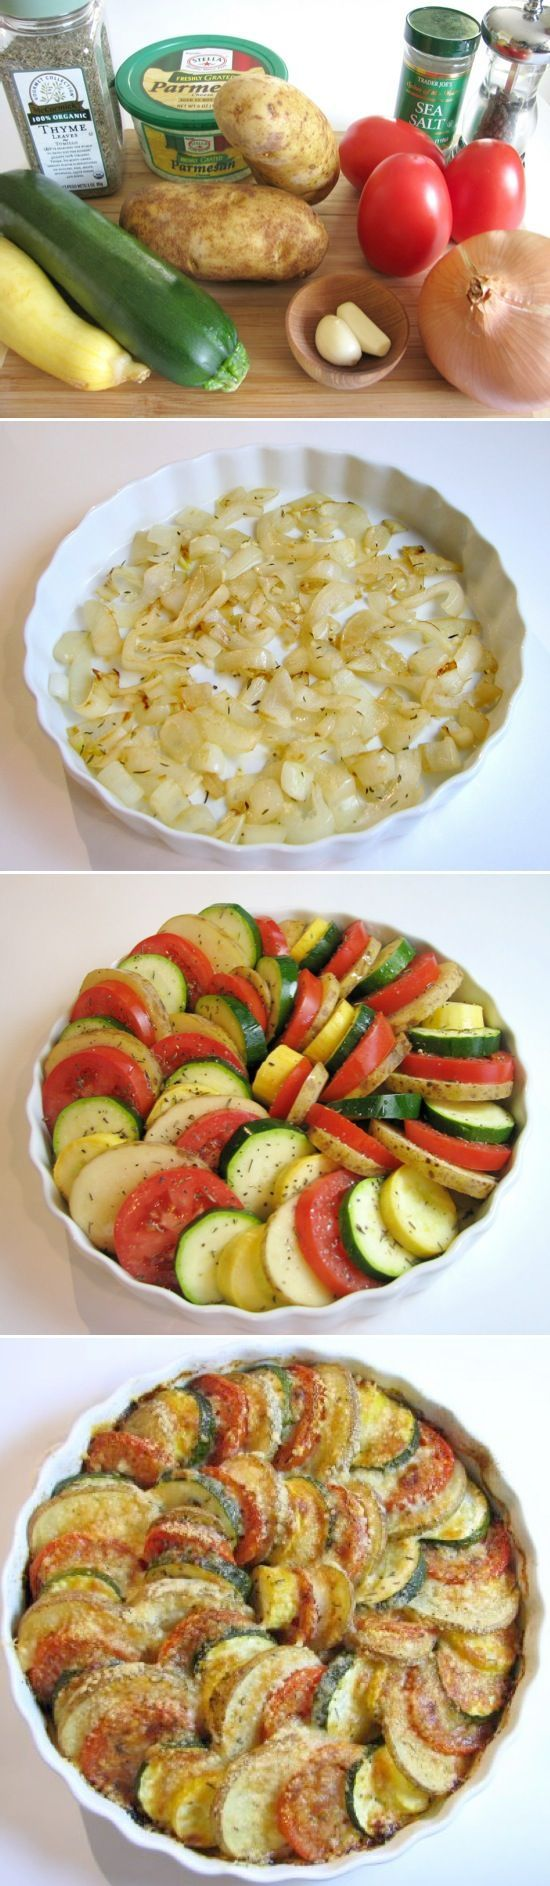 Parmesan Vegetable Spiral: a bed of onions is topped by a medley of veggies (tomatoes, potatoes, squash and zucchini) then drizzled w EVOO, sprinkled w Parmesan cheese and roasted to perfection. Gorgeous new way to eat your veggies!